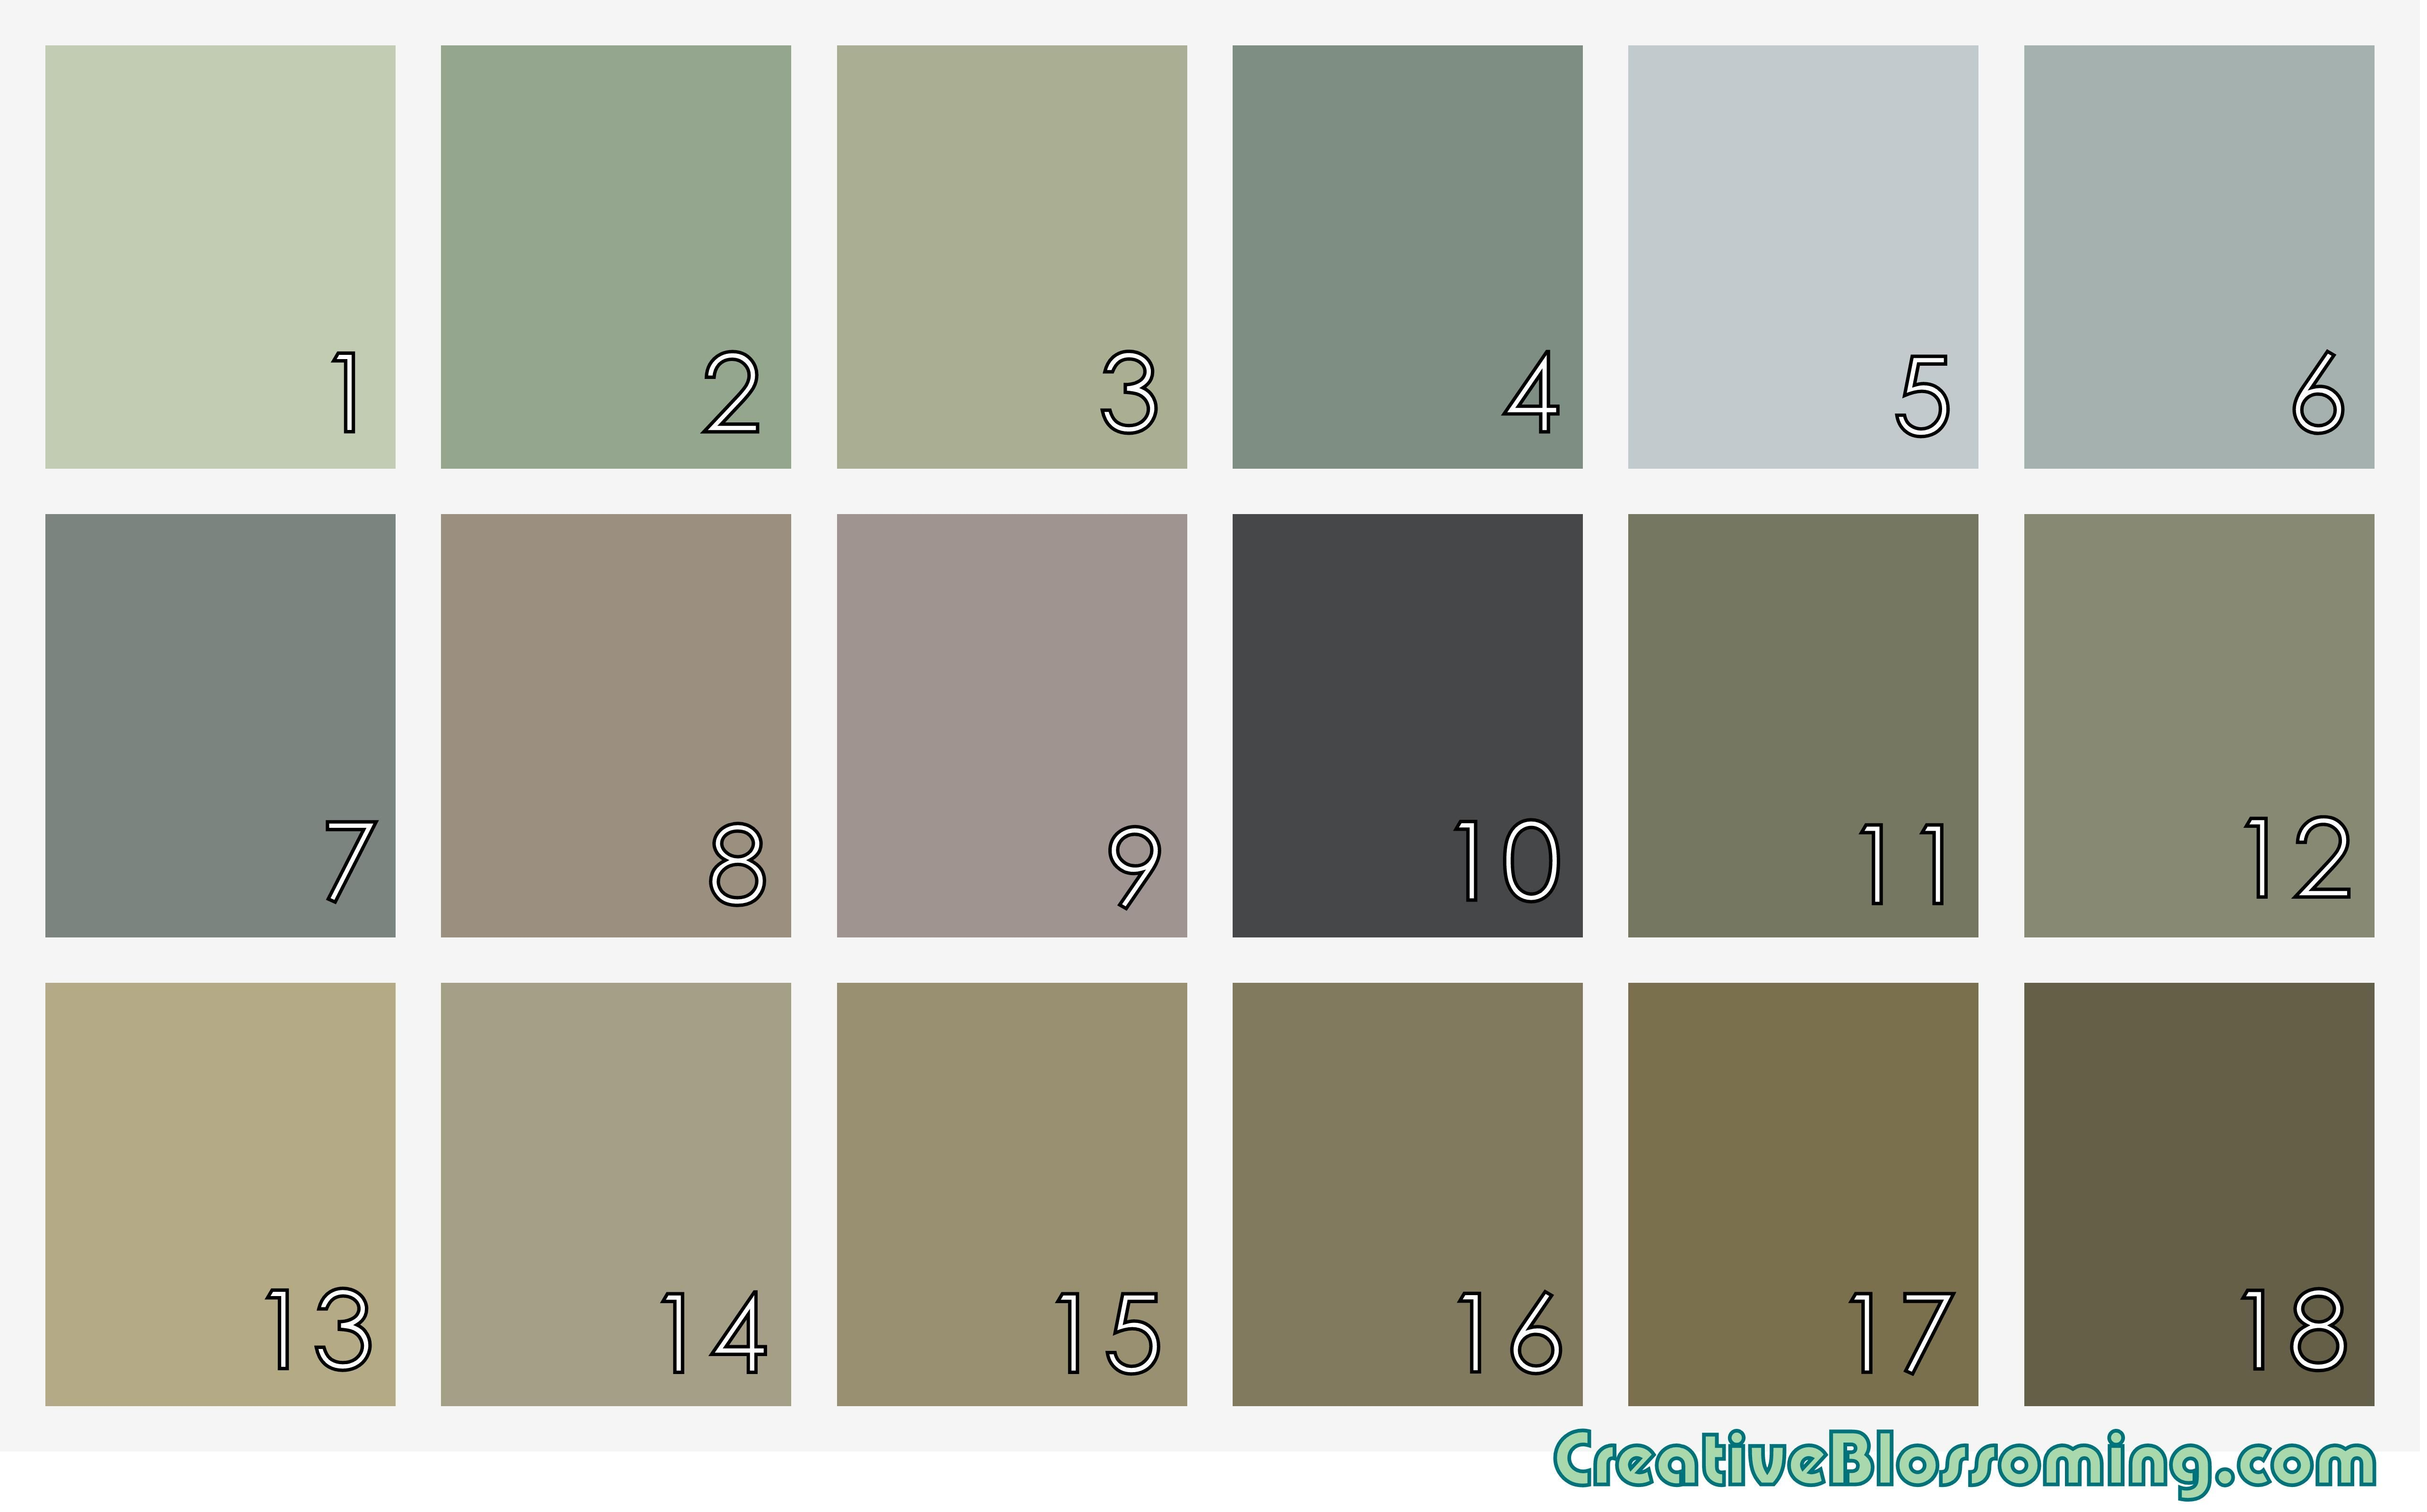 Tan Latte Blue Slate Gray Decor Blue Green Purple Lavender Taupe Gray Brown Sage Olive